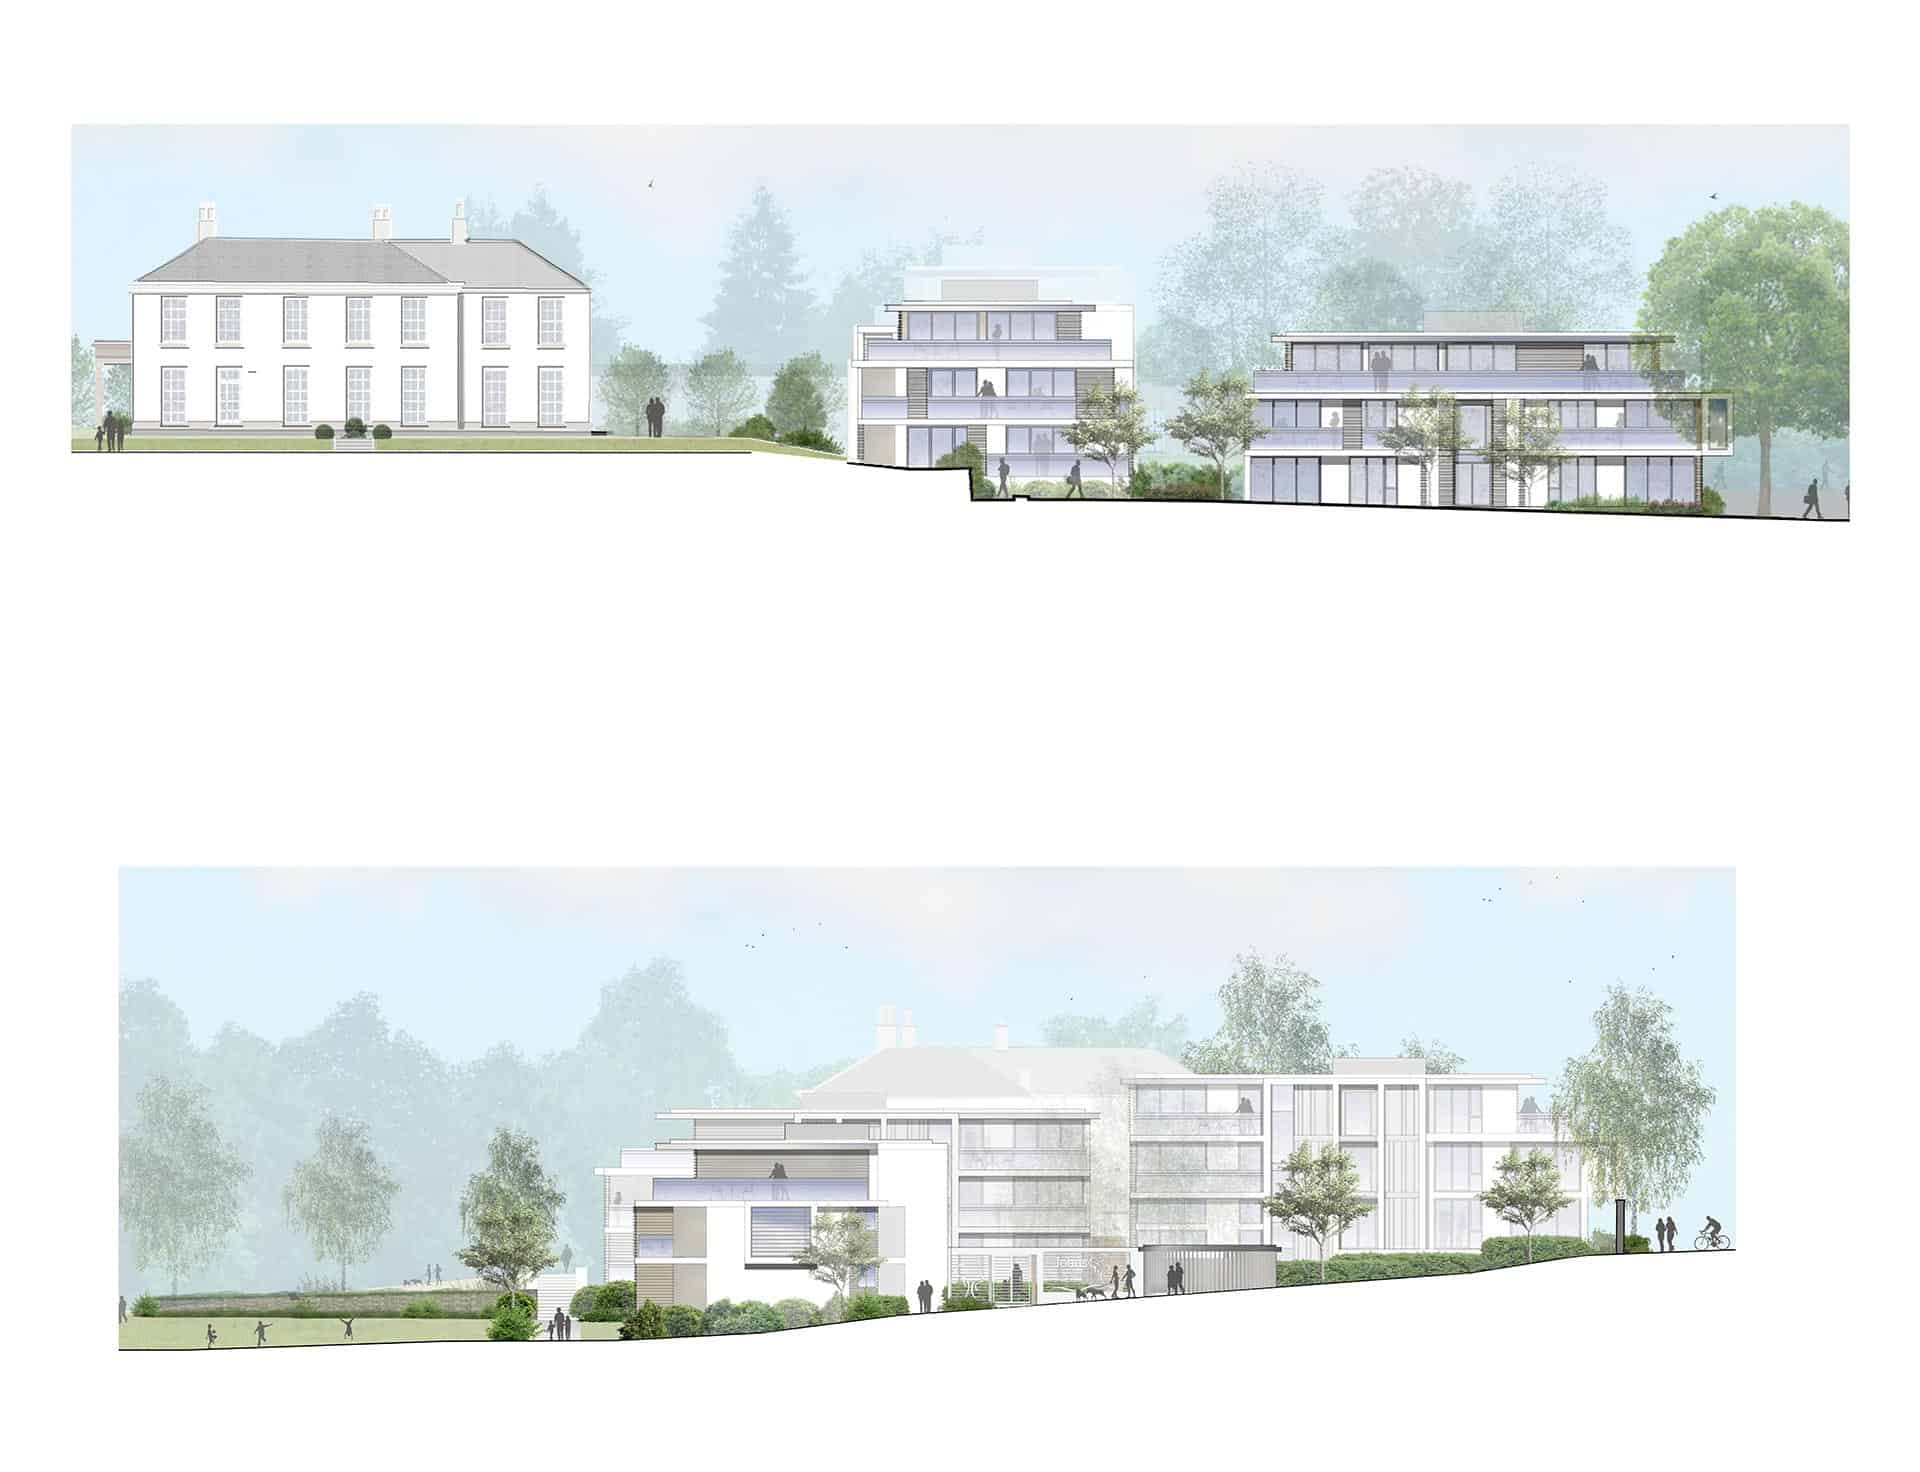 40 residential properties set in a Grade II listed setting with refurbishment of the existing college building.